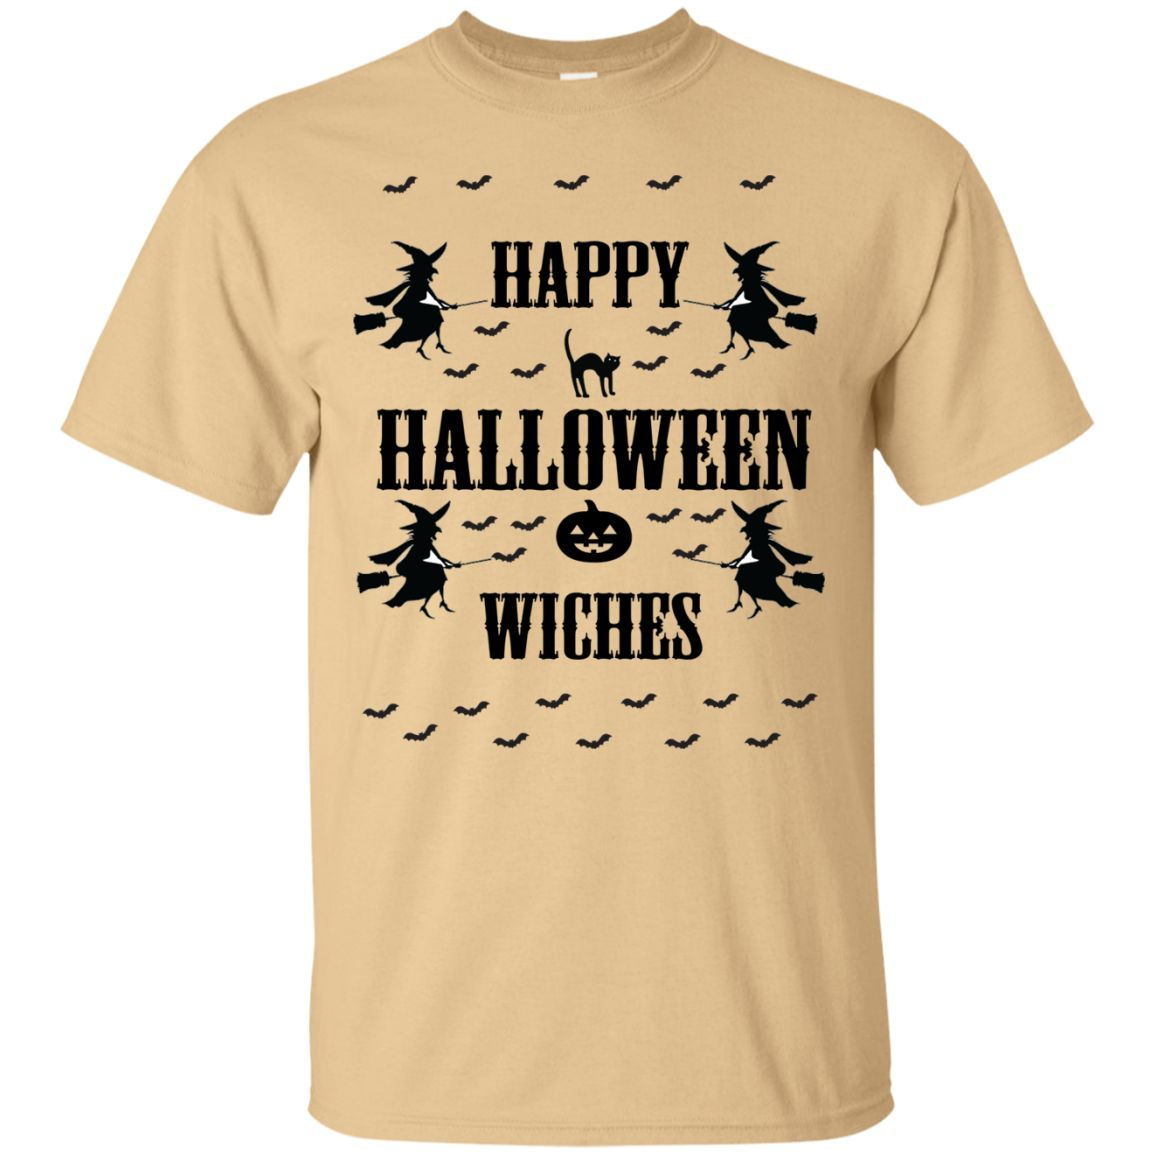 Happy Halloween Witches - Baseball ringer tee - Ugly Christmas Sweater style T-Shirt